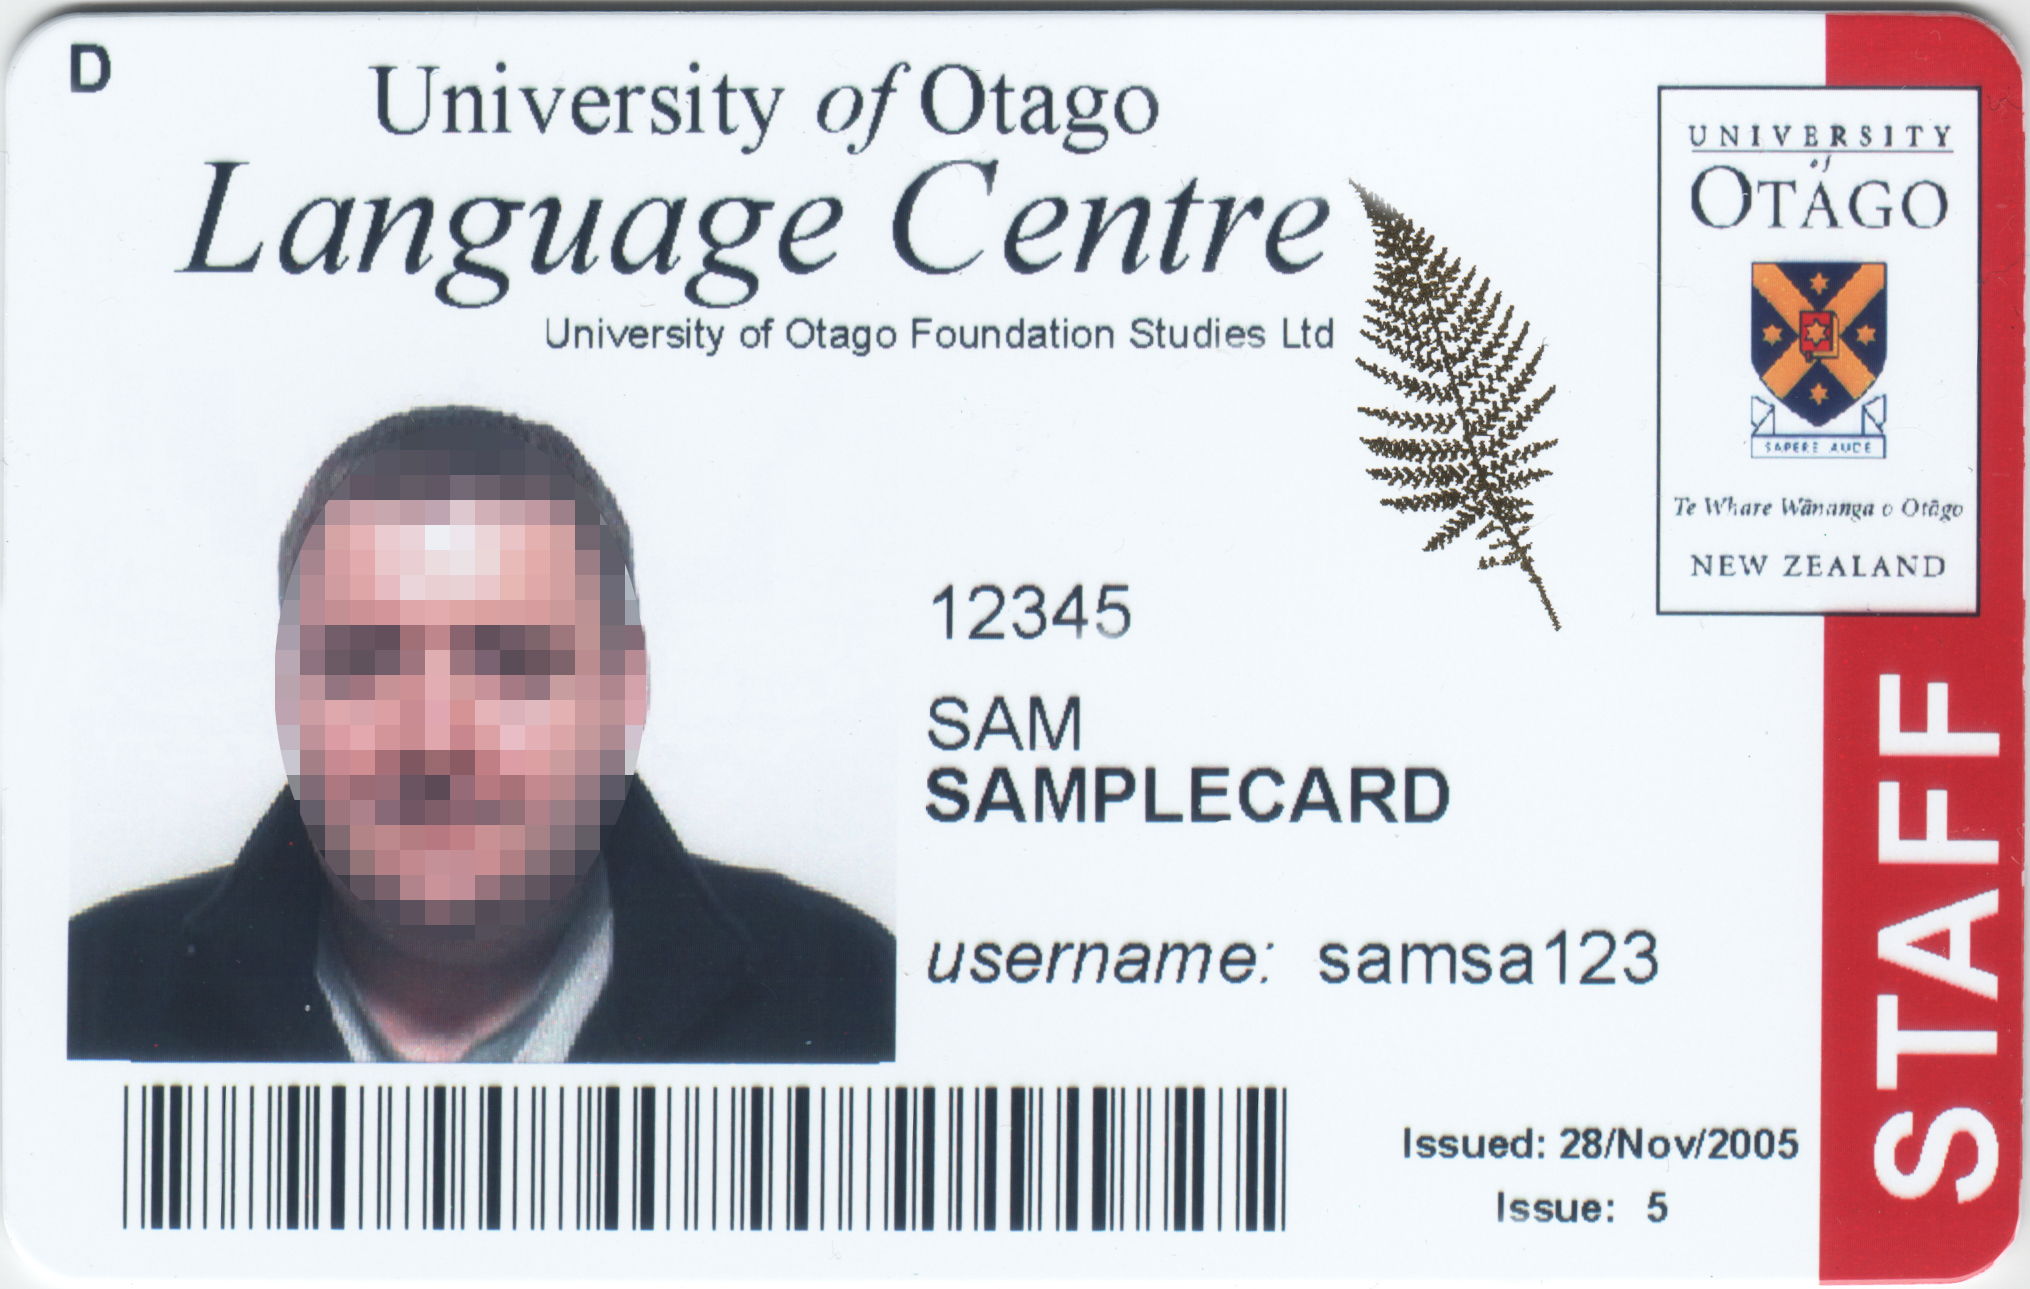 ID OULC Staff